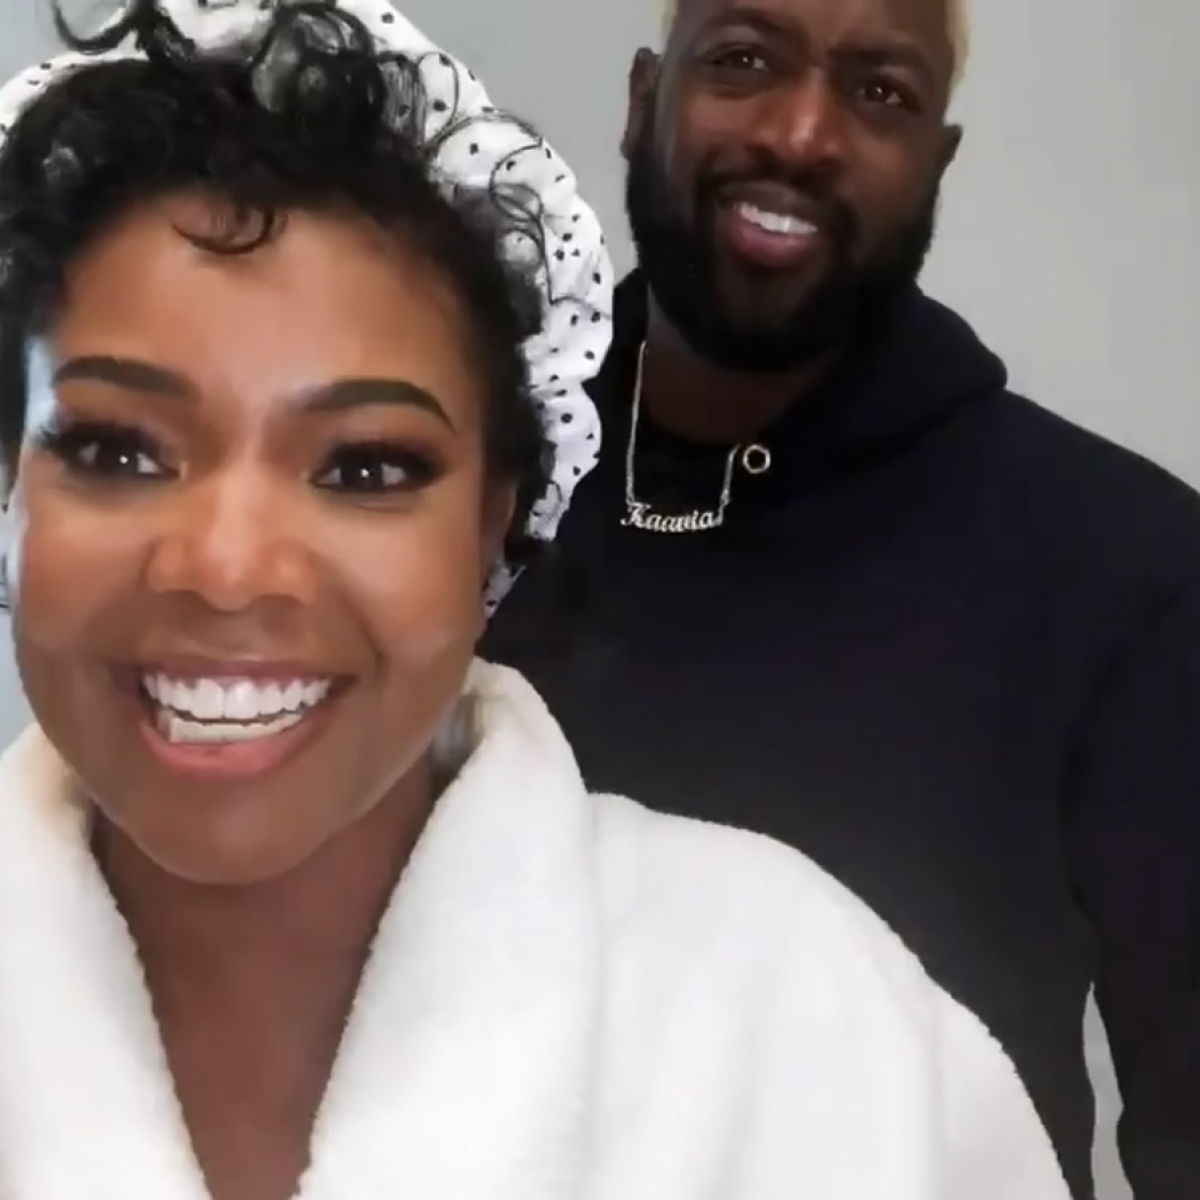 Gabrielle Union And Dwayne Wade's 'Insecure' Emmys Moment Stole The Show